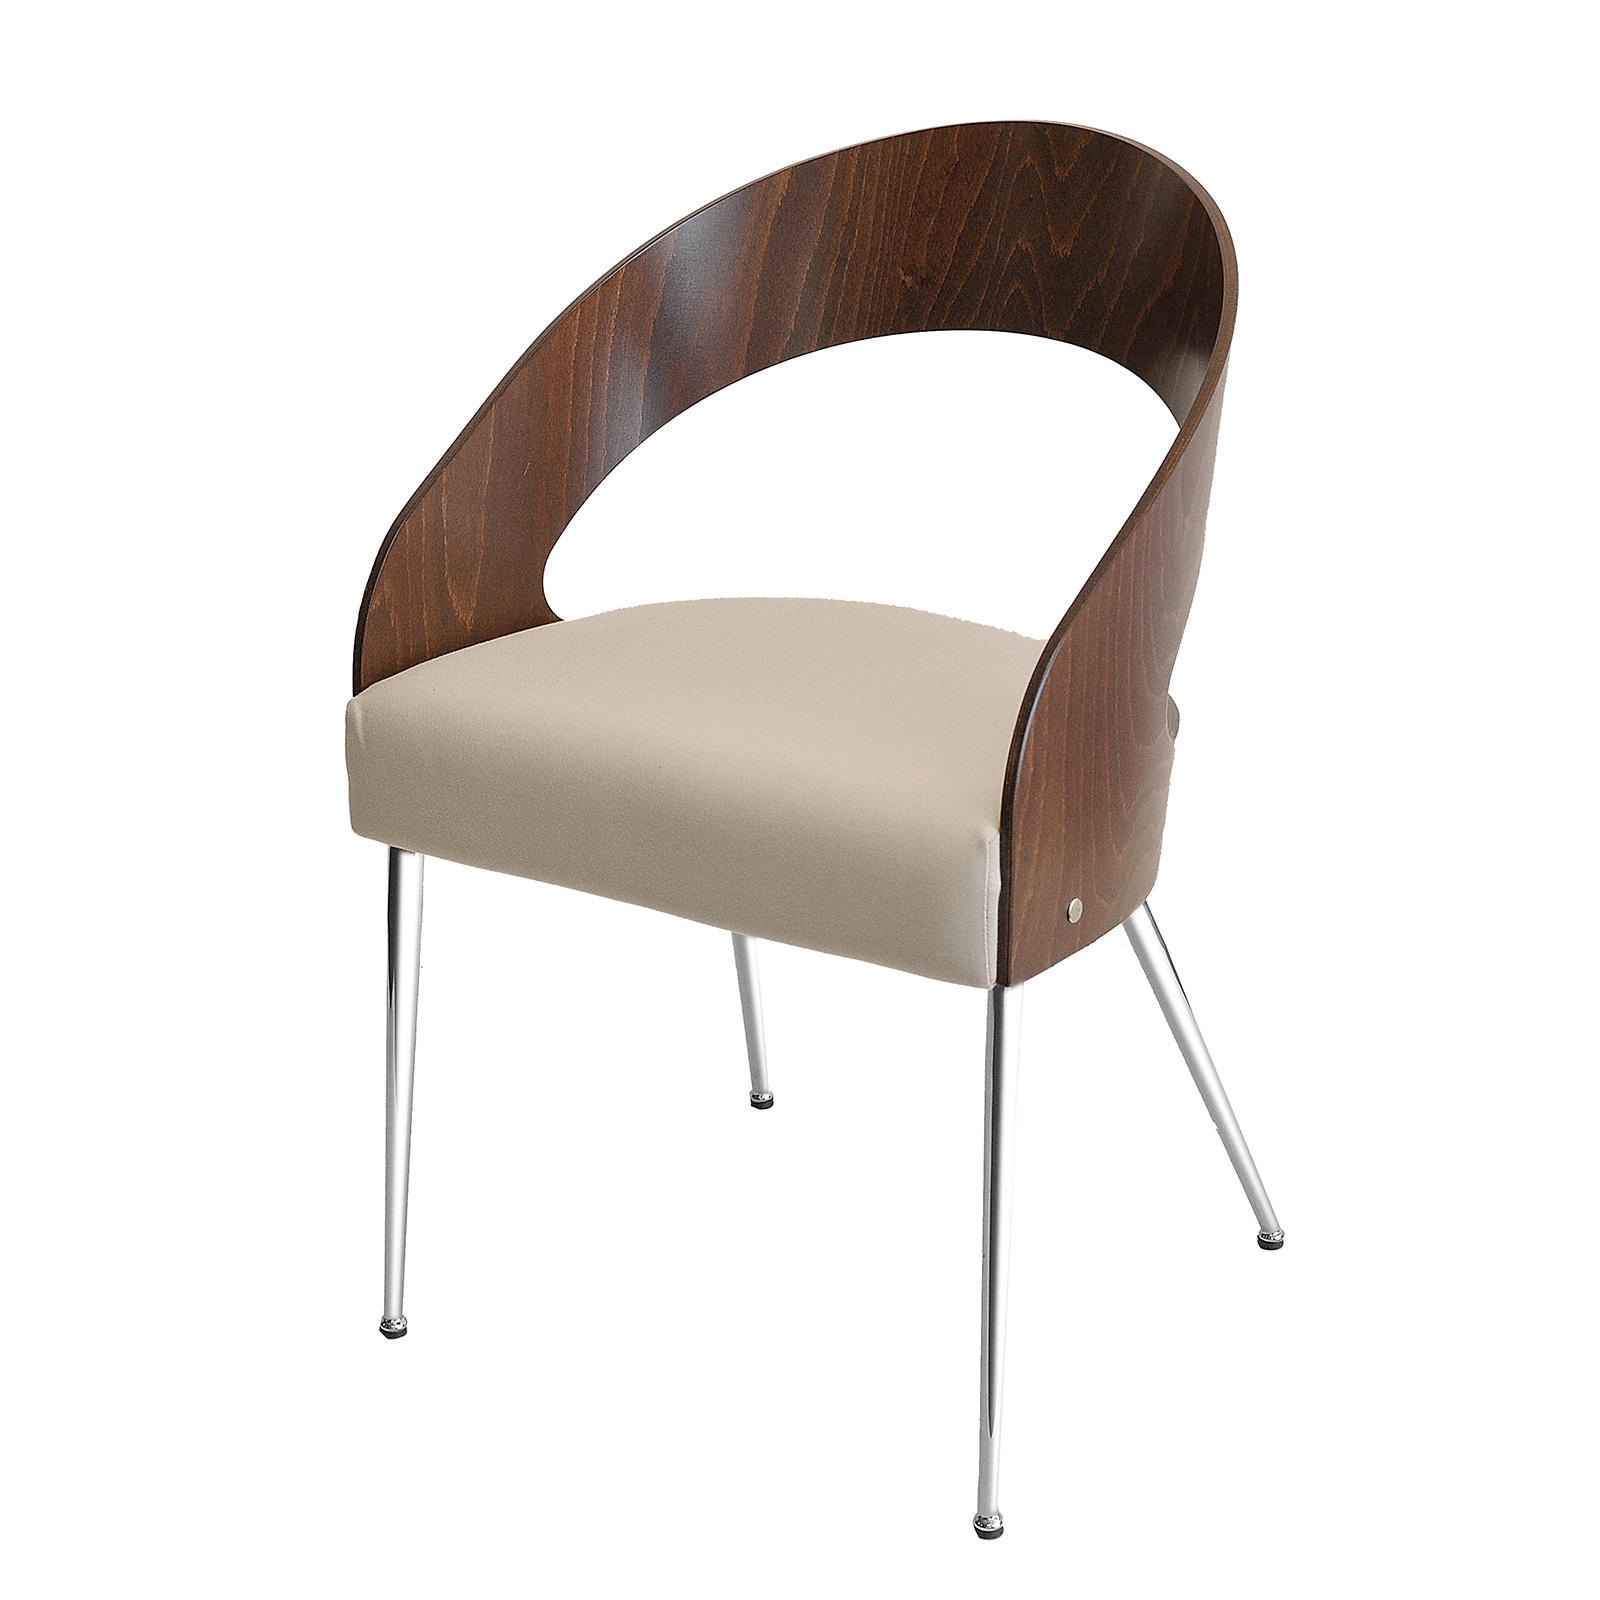 Florida Seating CN-EMILY H S GR1 chair, lounge, indoor